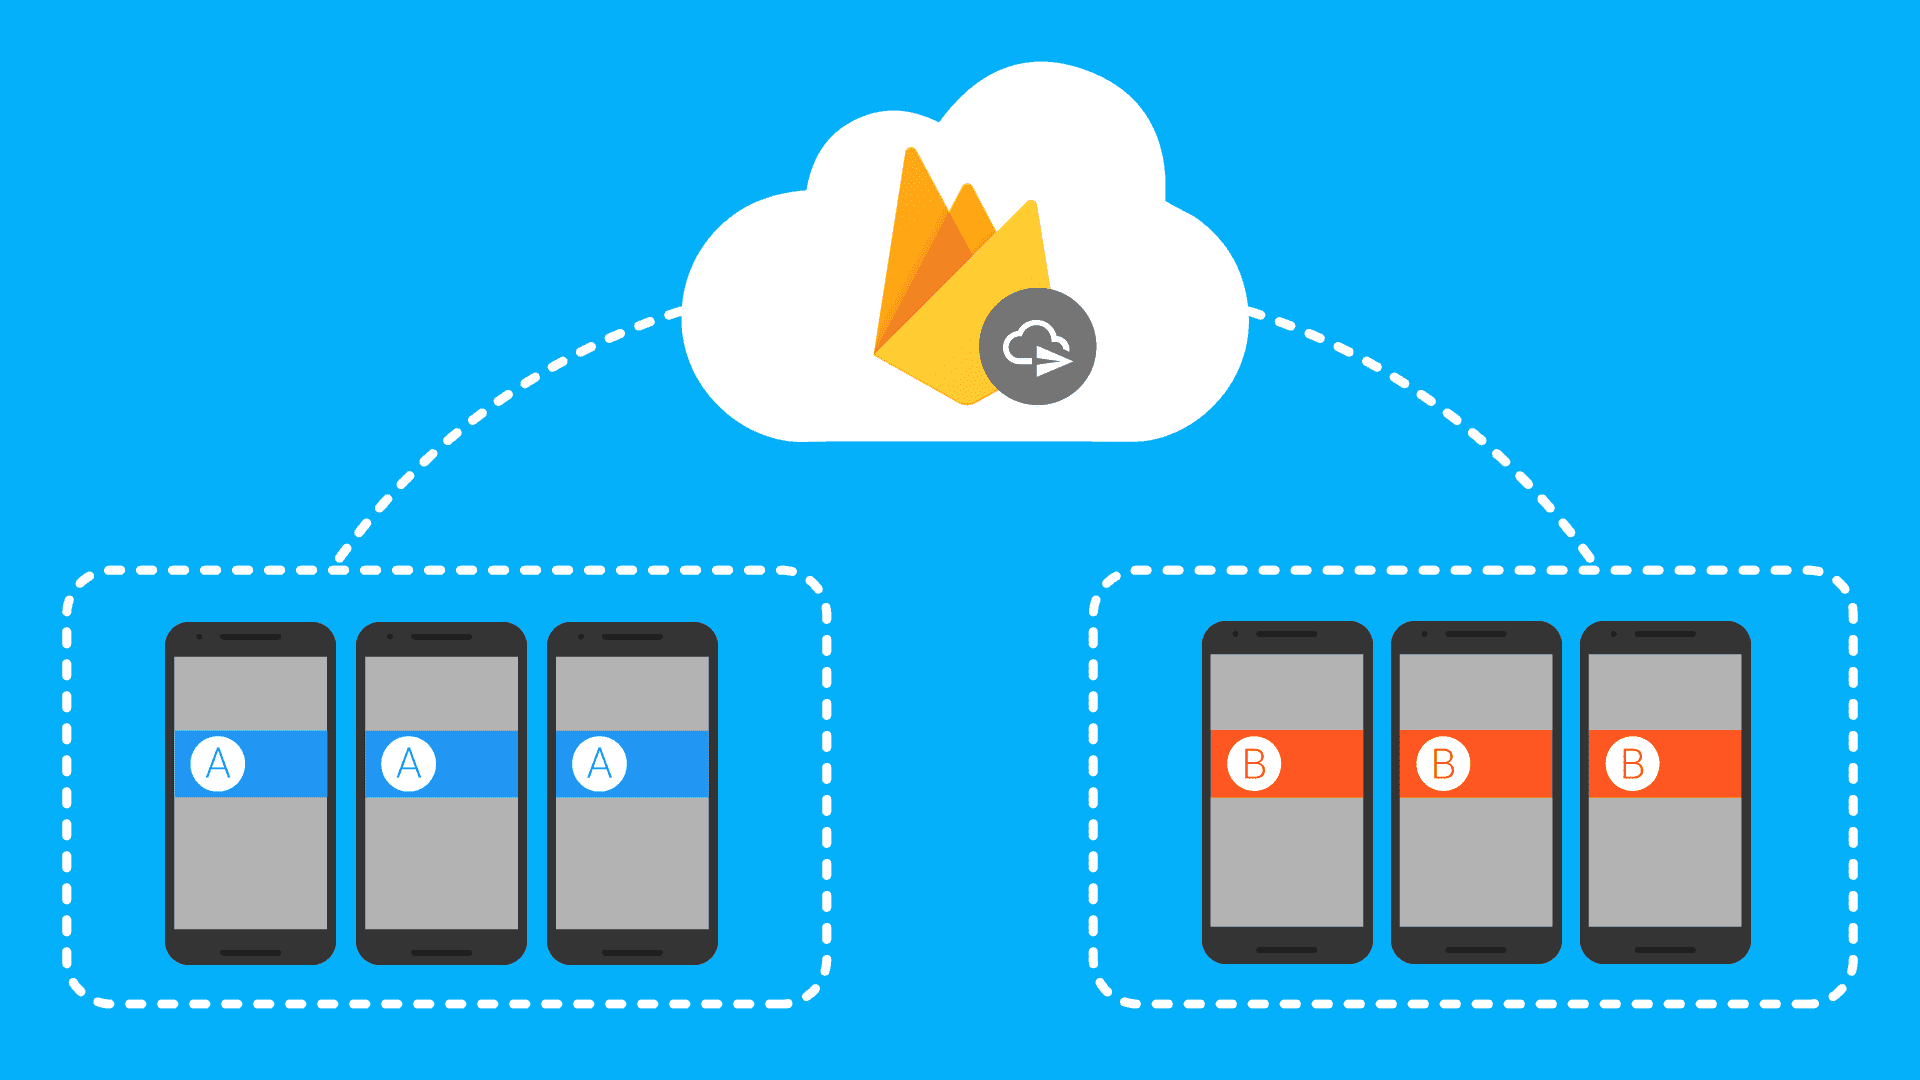 Illustration of A/B testing notifications